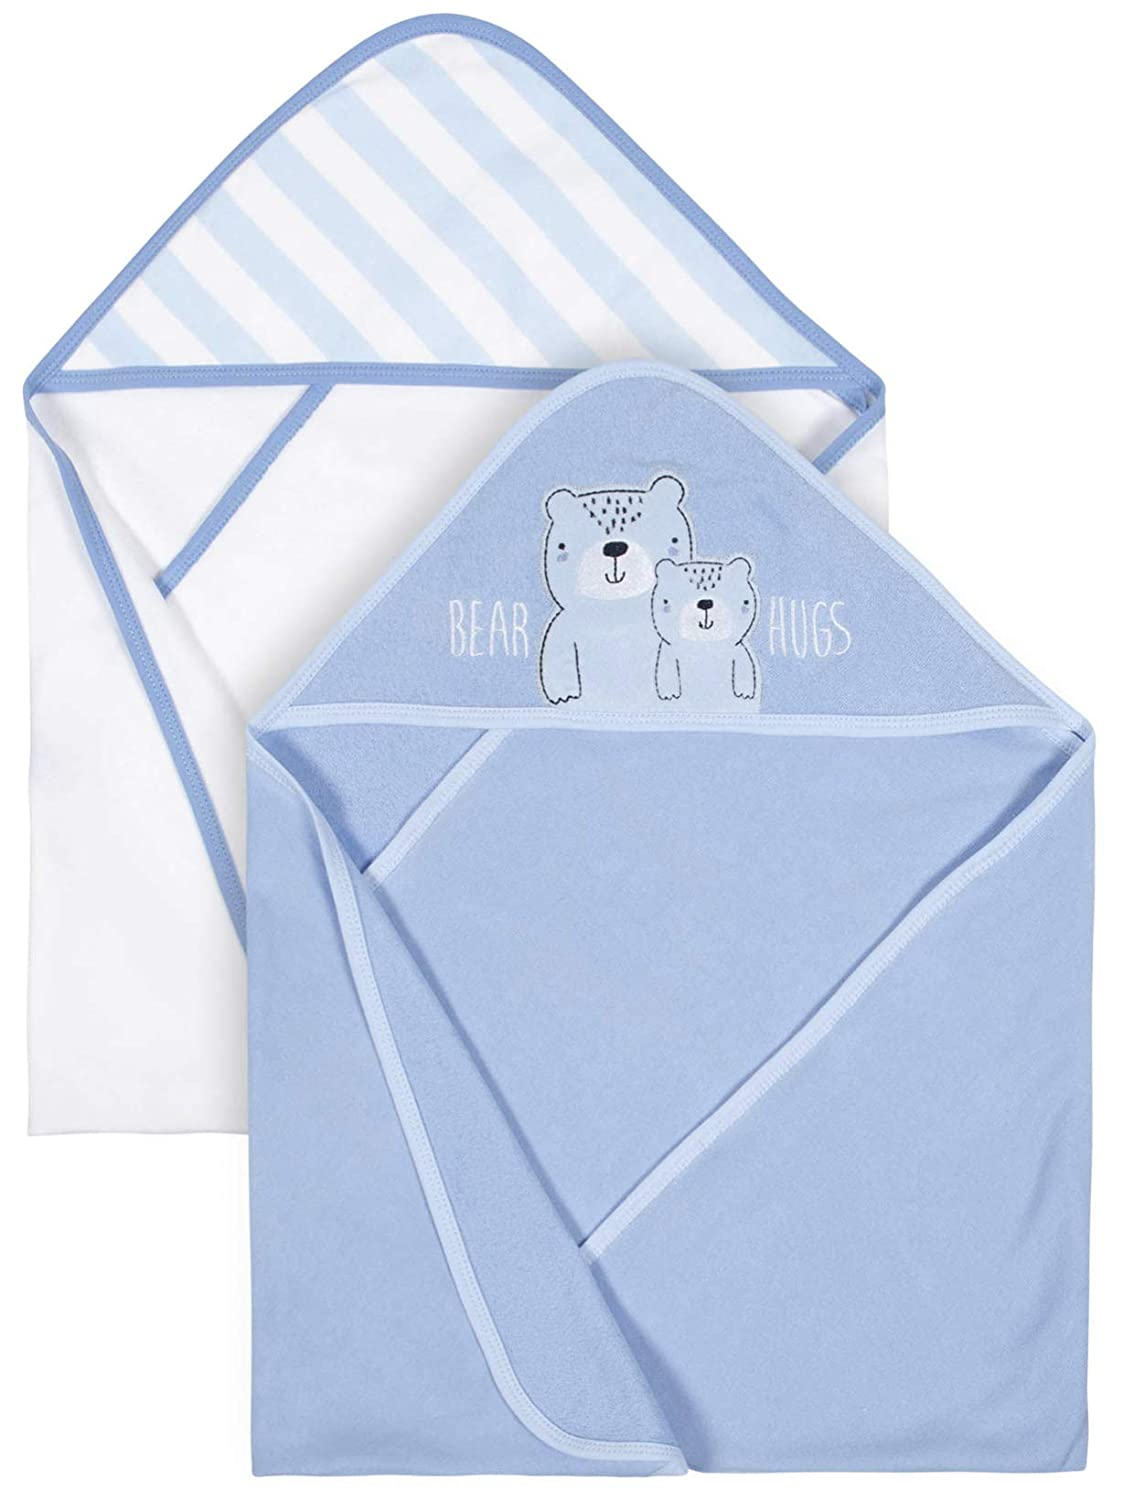 Organic Cotton Terry Hooded Towels, 2pk (Baby Boy)